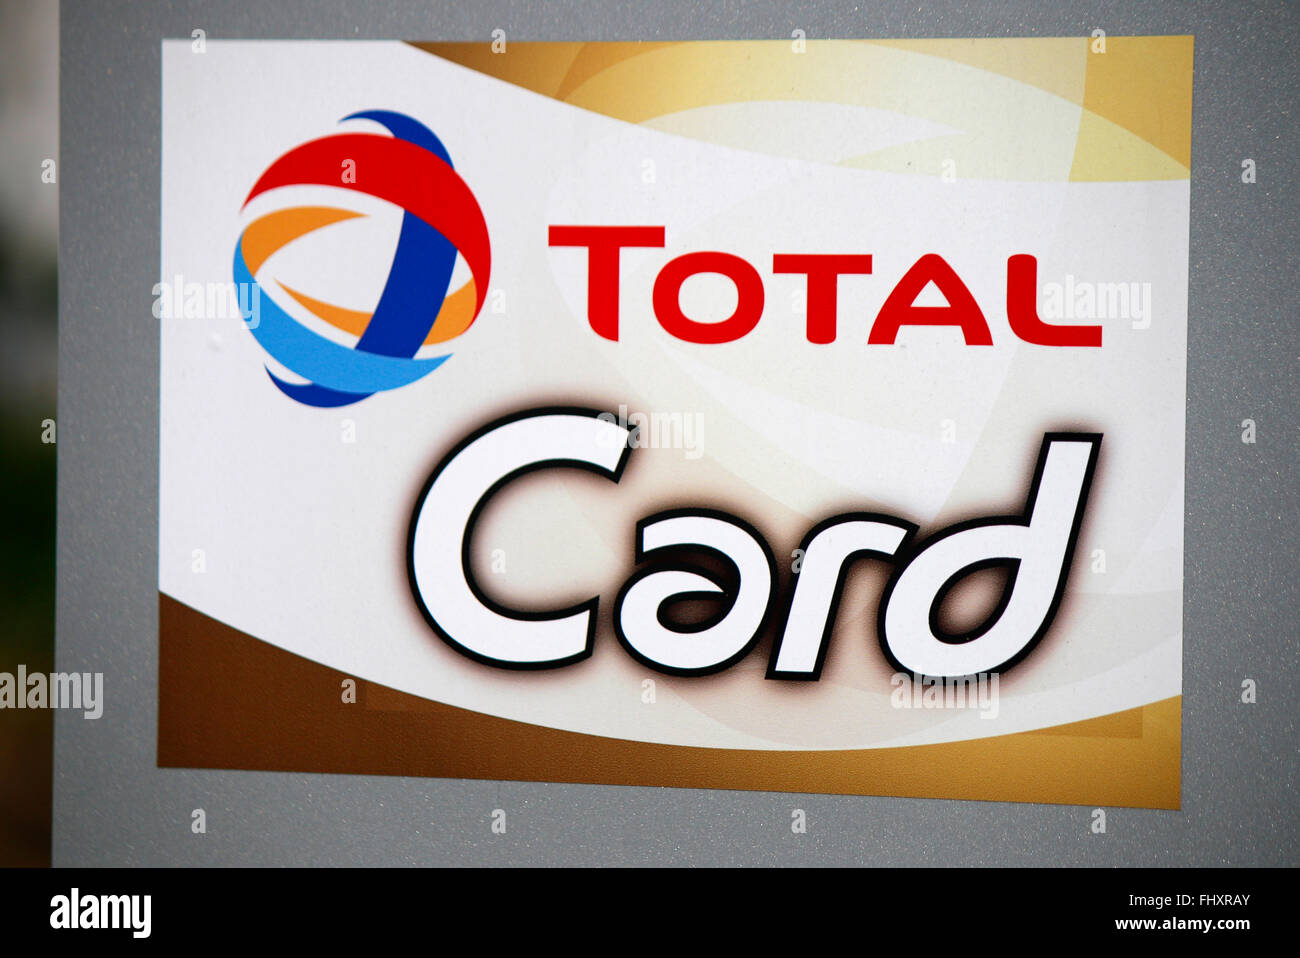 "Markennamen: ""Total Card"", Berlin. Stockbild"